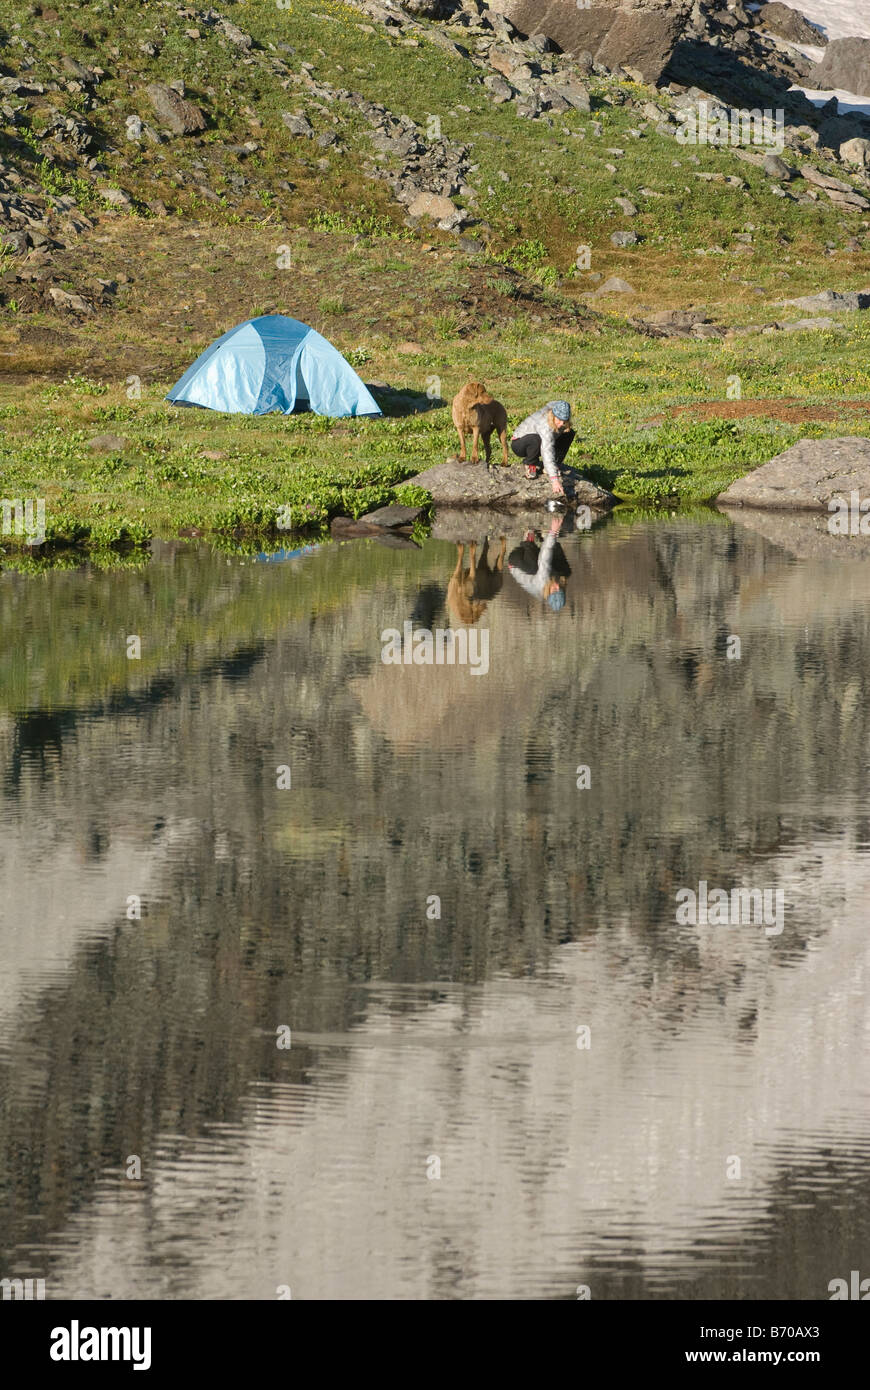 Woman getting water from Clear Lake, San Juan National Forest, Colorado. - Stock Image